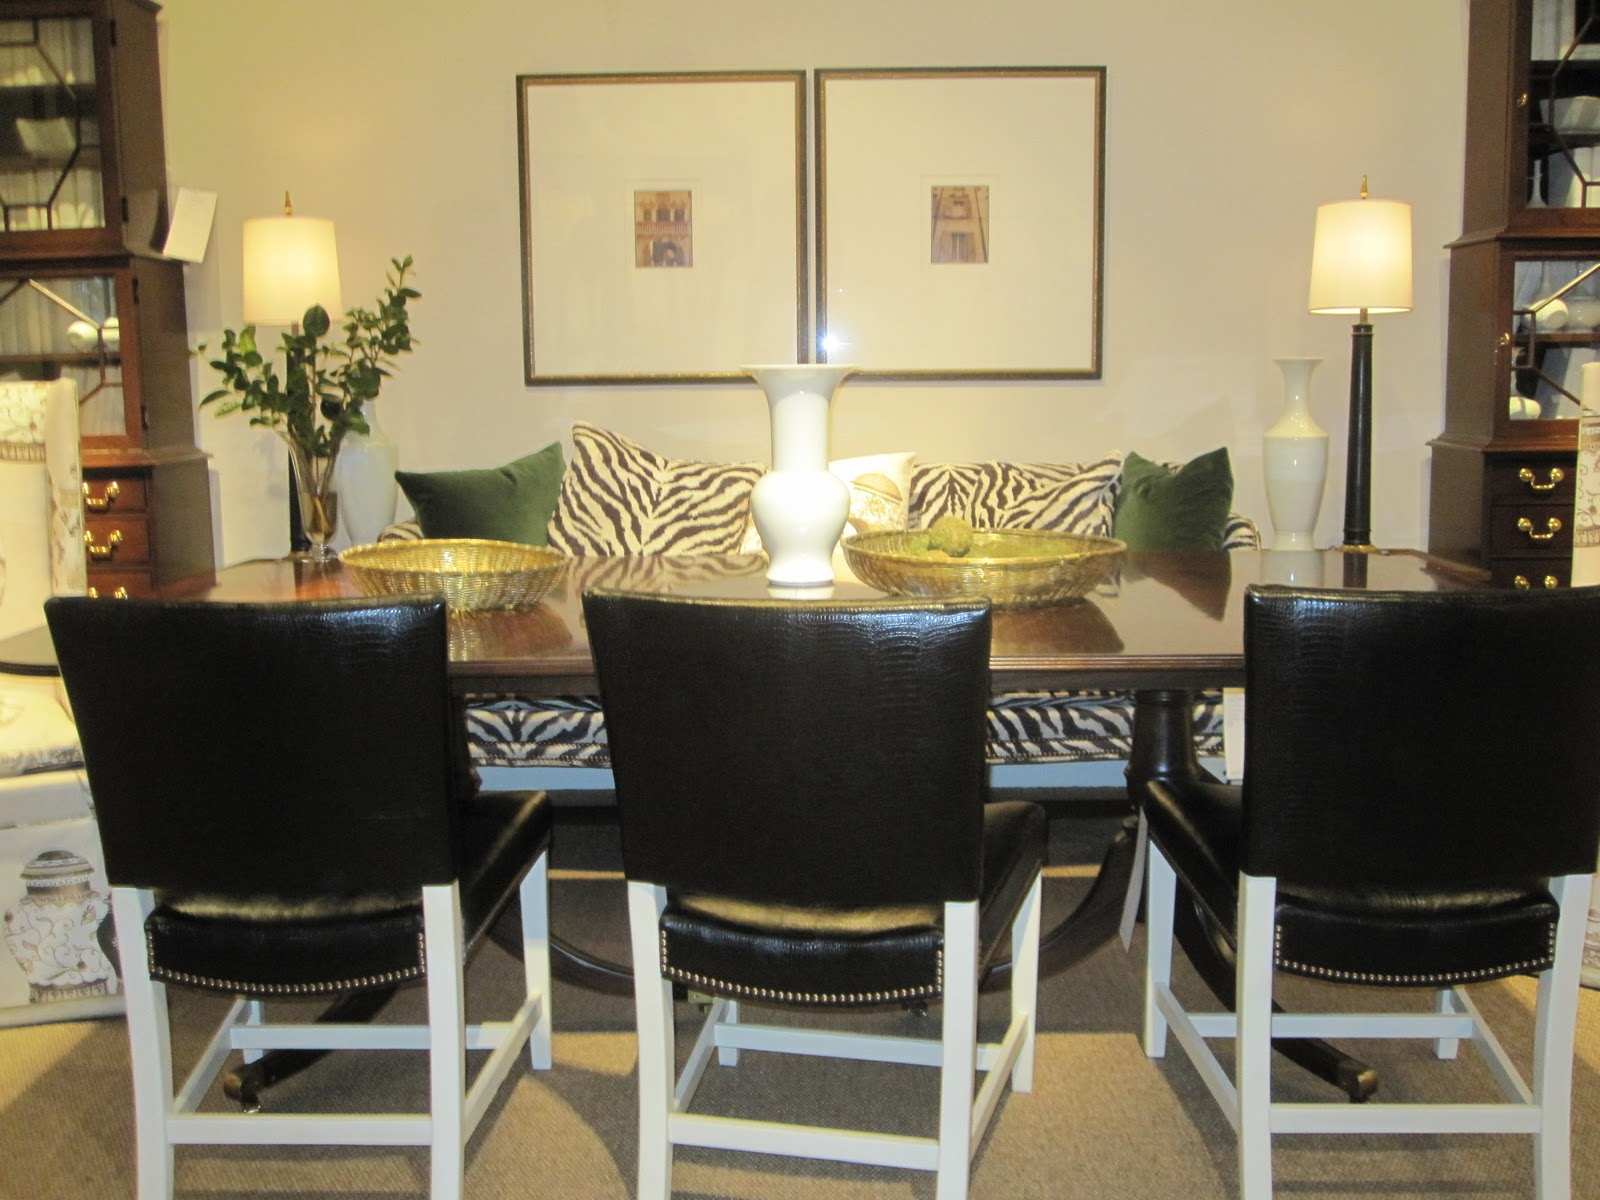 Raising This Sectional To Dining Height Creates A Much Tighter Space